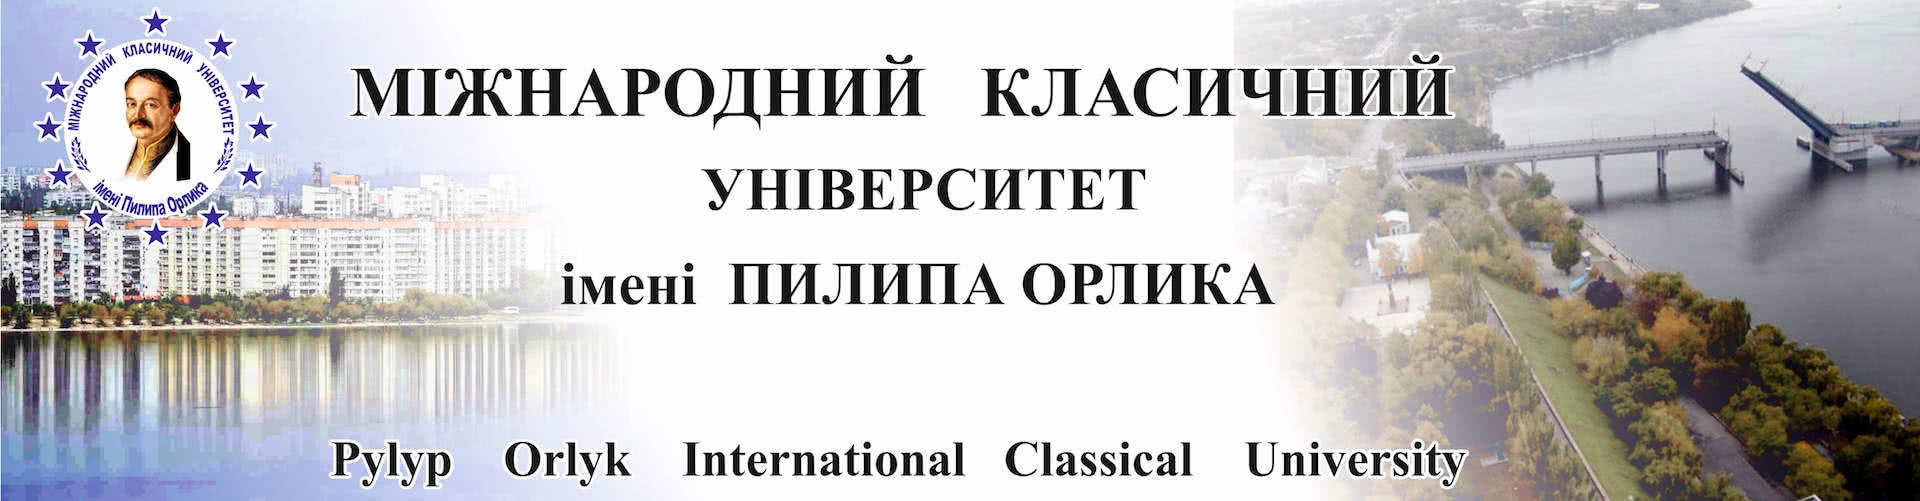 Pylyp Orlyk International Classical University